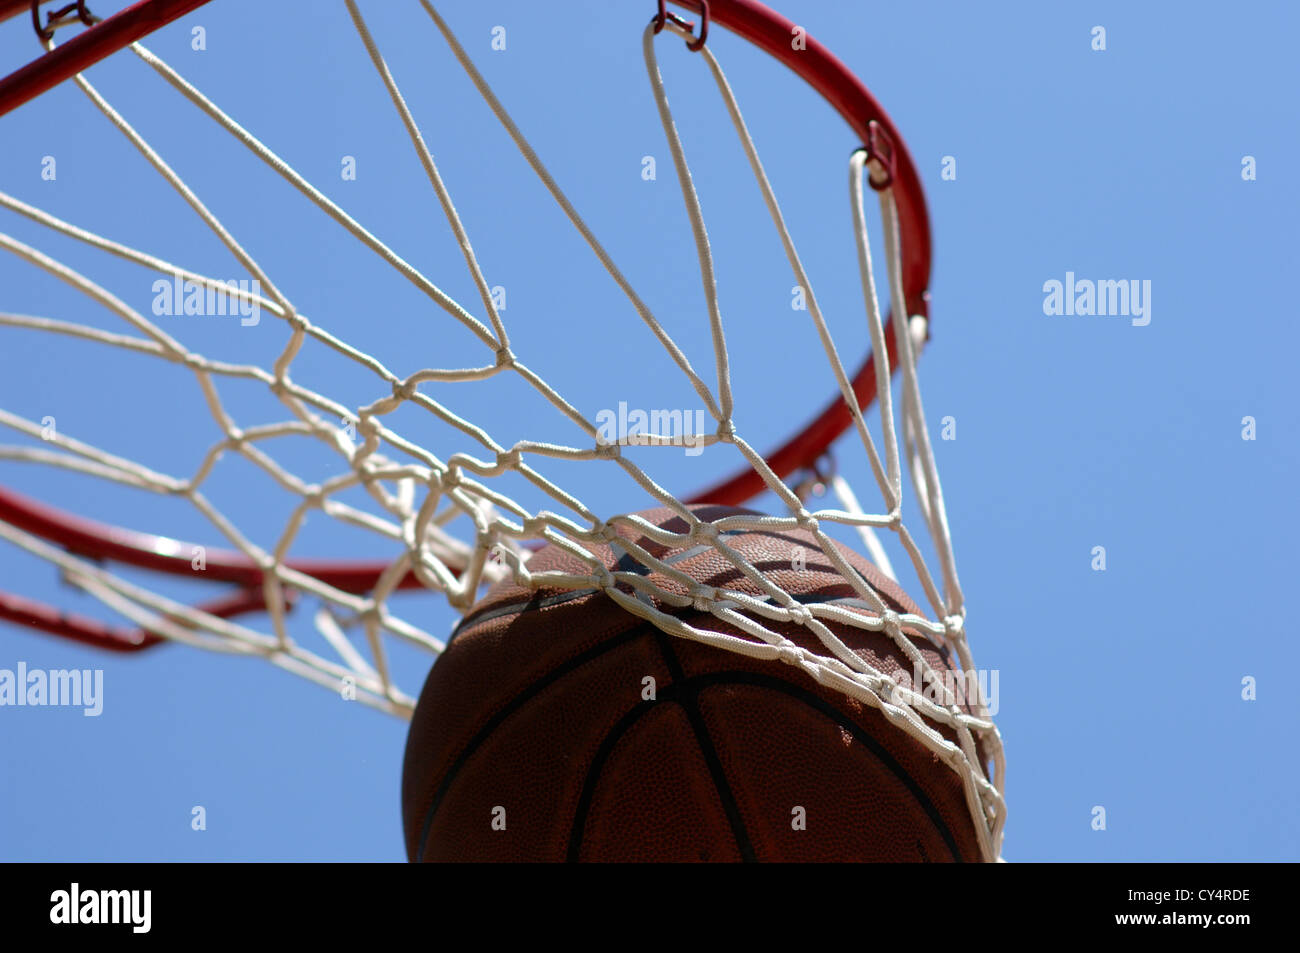 f232f17f3cc Nothing But Net Photos   Nothing But Net Images - Alamy